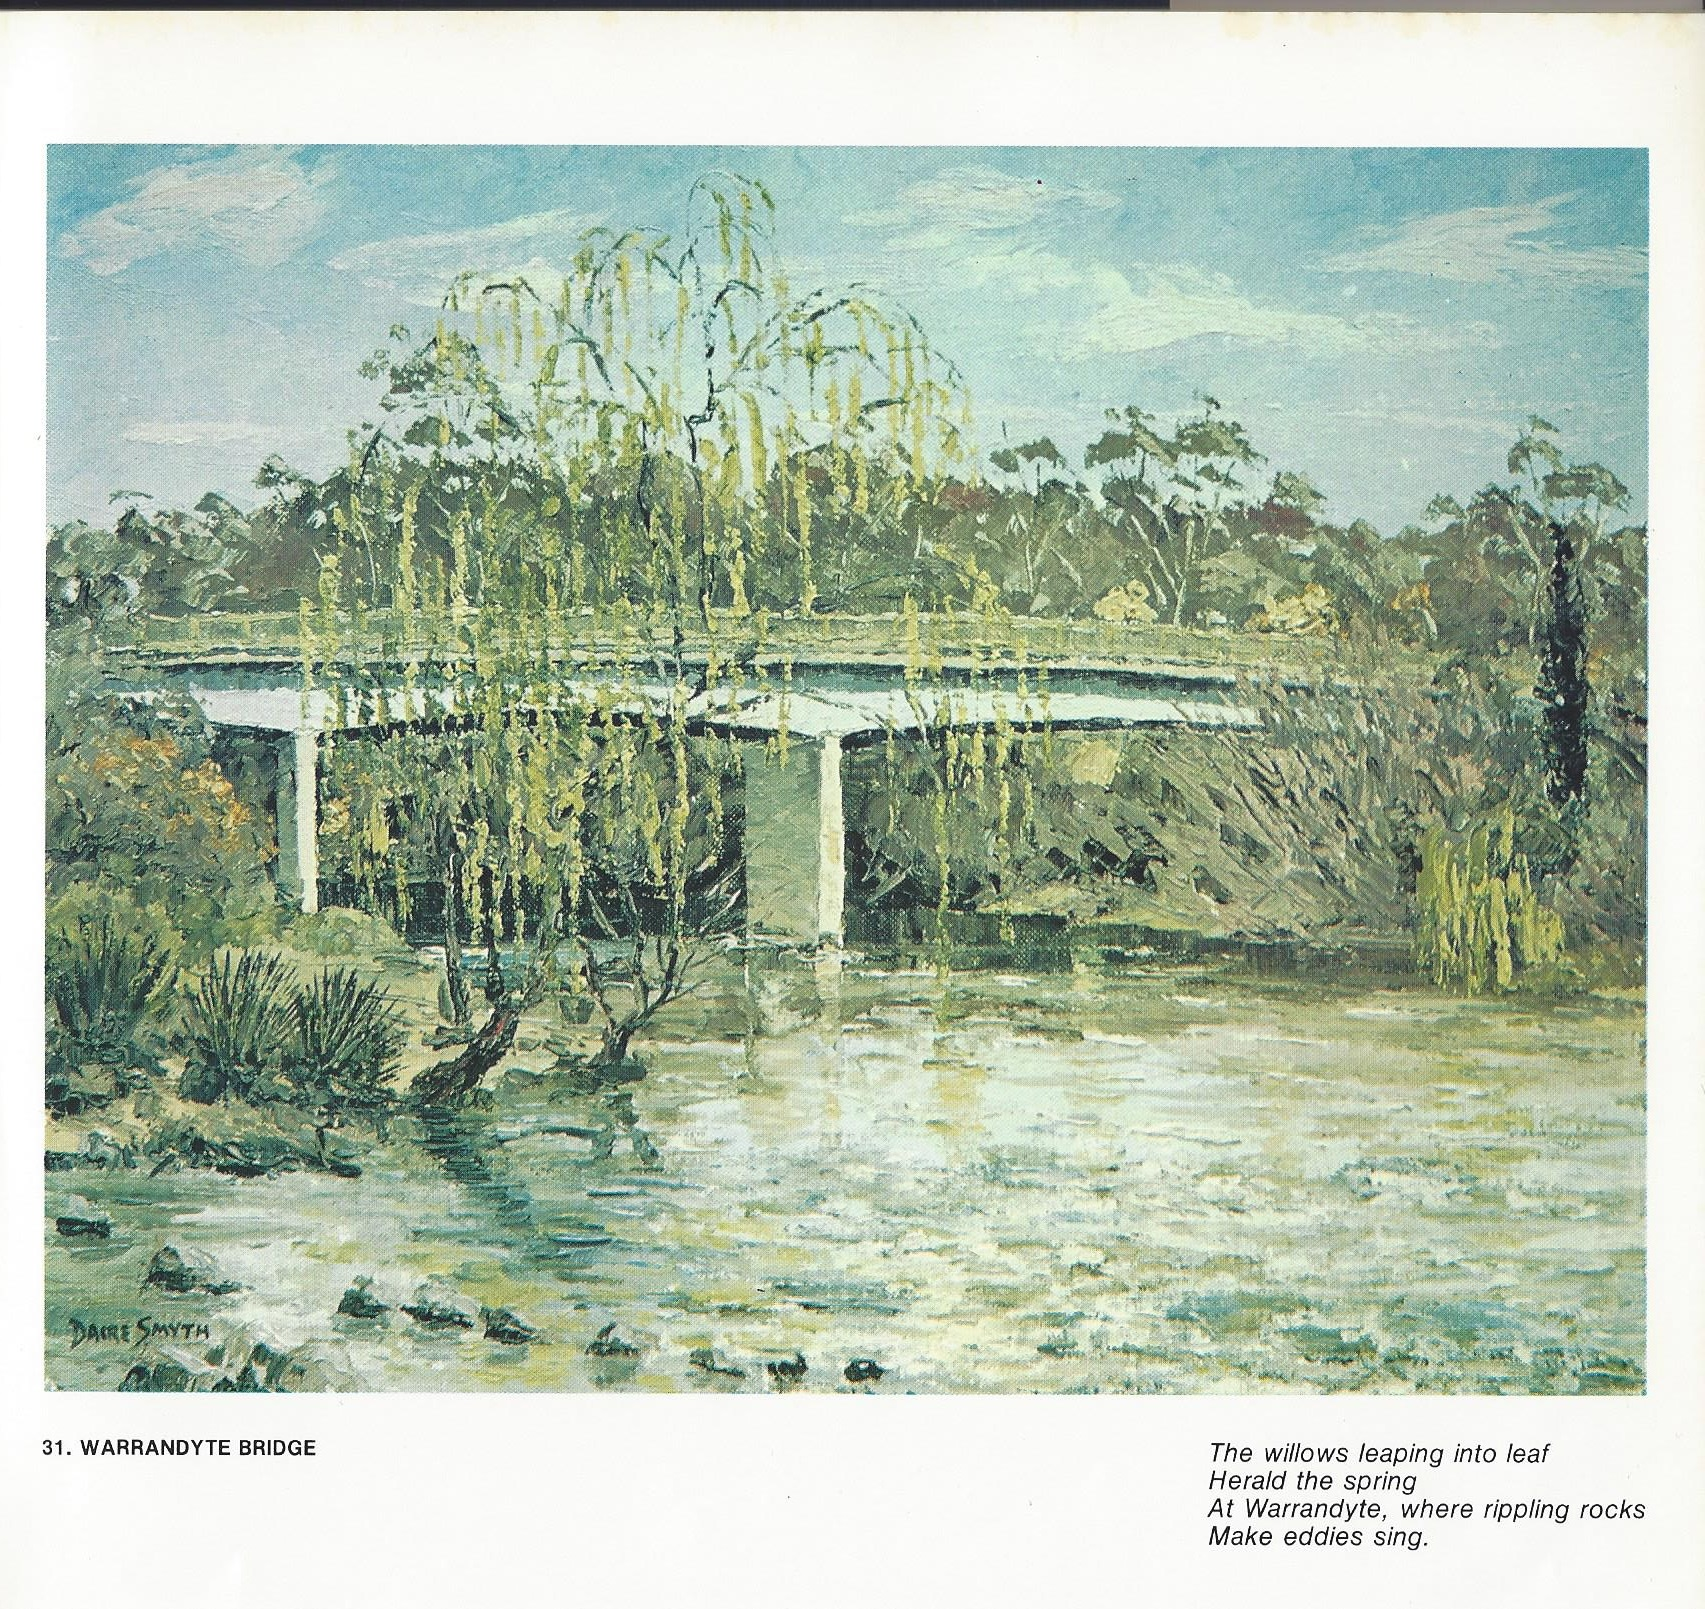 31. Warrandyte Bridge